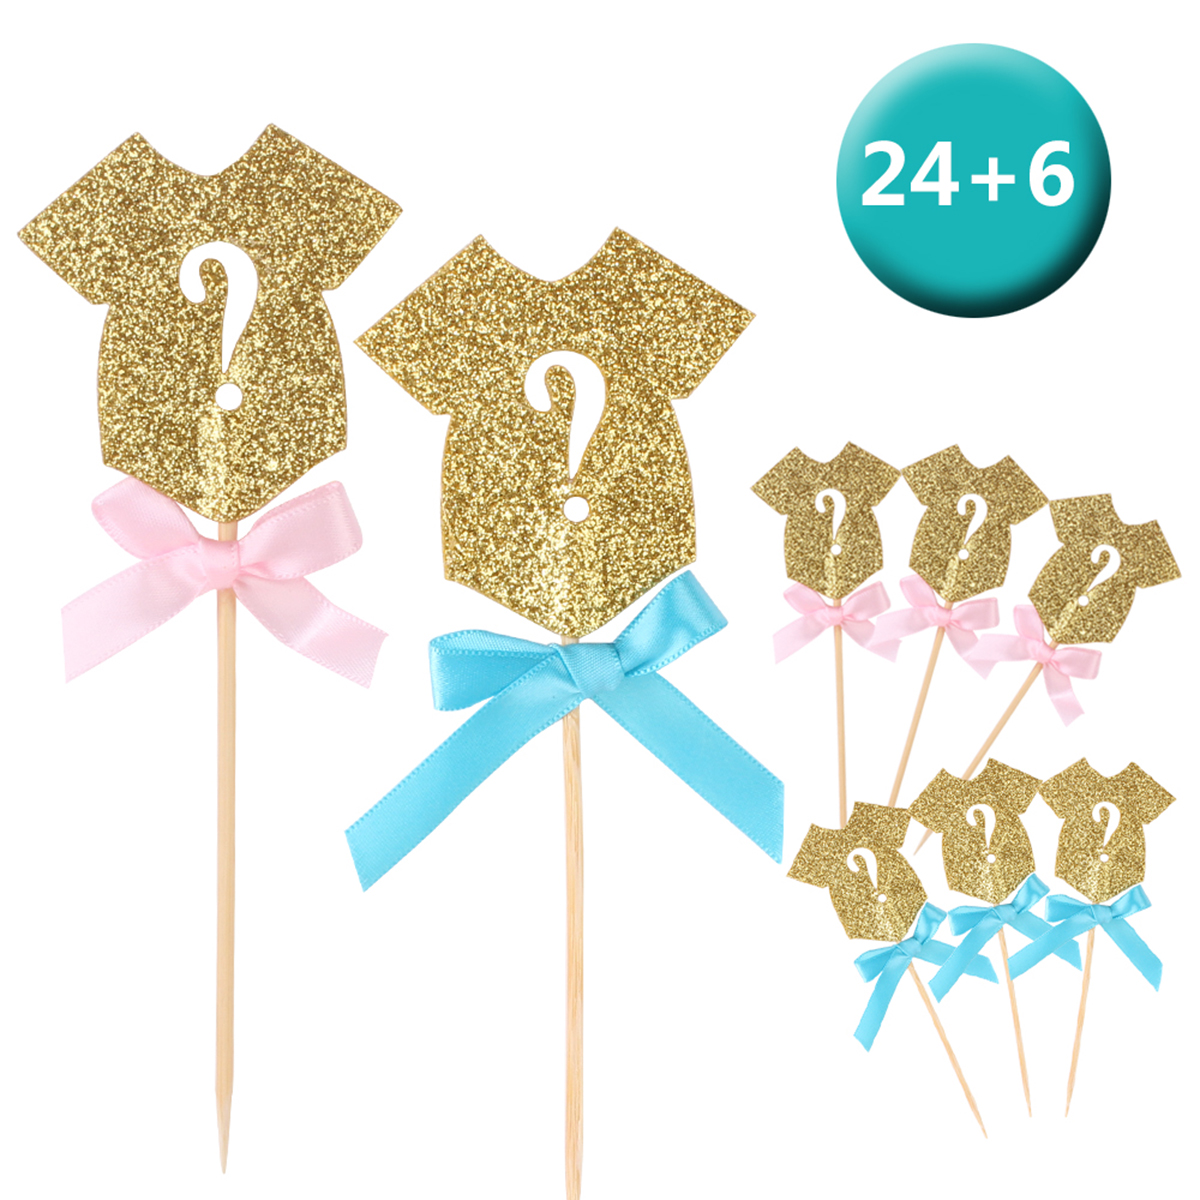 30pcs Glitter Cupcake Toppers Cake Toppers Paper Kids Birthday Party Dessert Table Decorating Supply Universe Baby Shower Boy A Complete Range Of Specifications